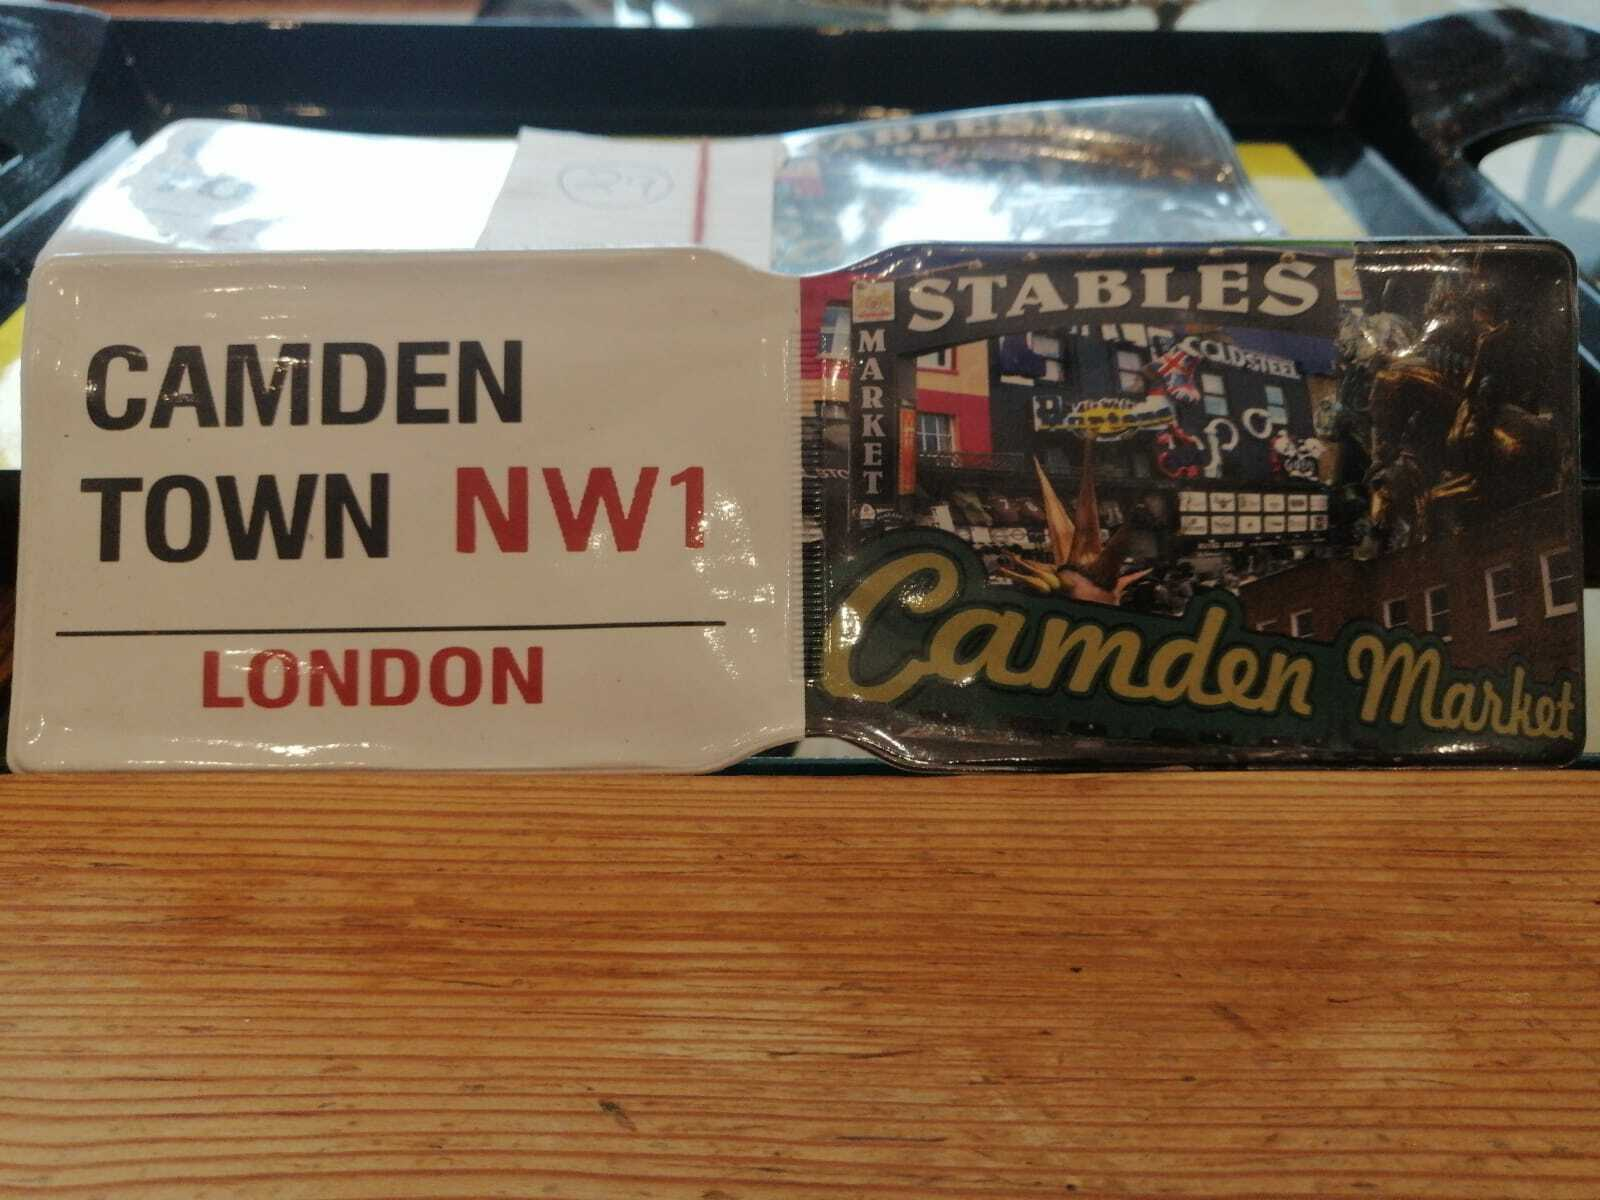 CAMDEN TOWN PASS CREDIT TRAVEL RAIL SLIM ID HOLDER WALLET FOR OYSTER CARD